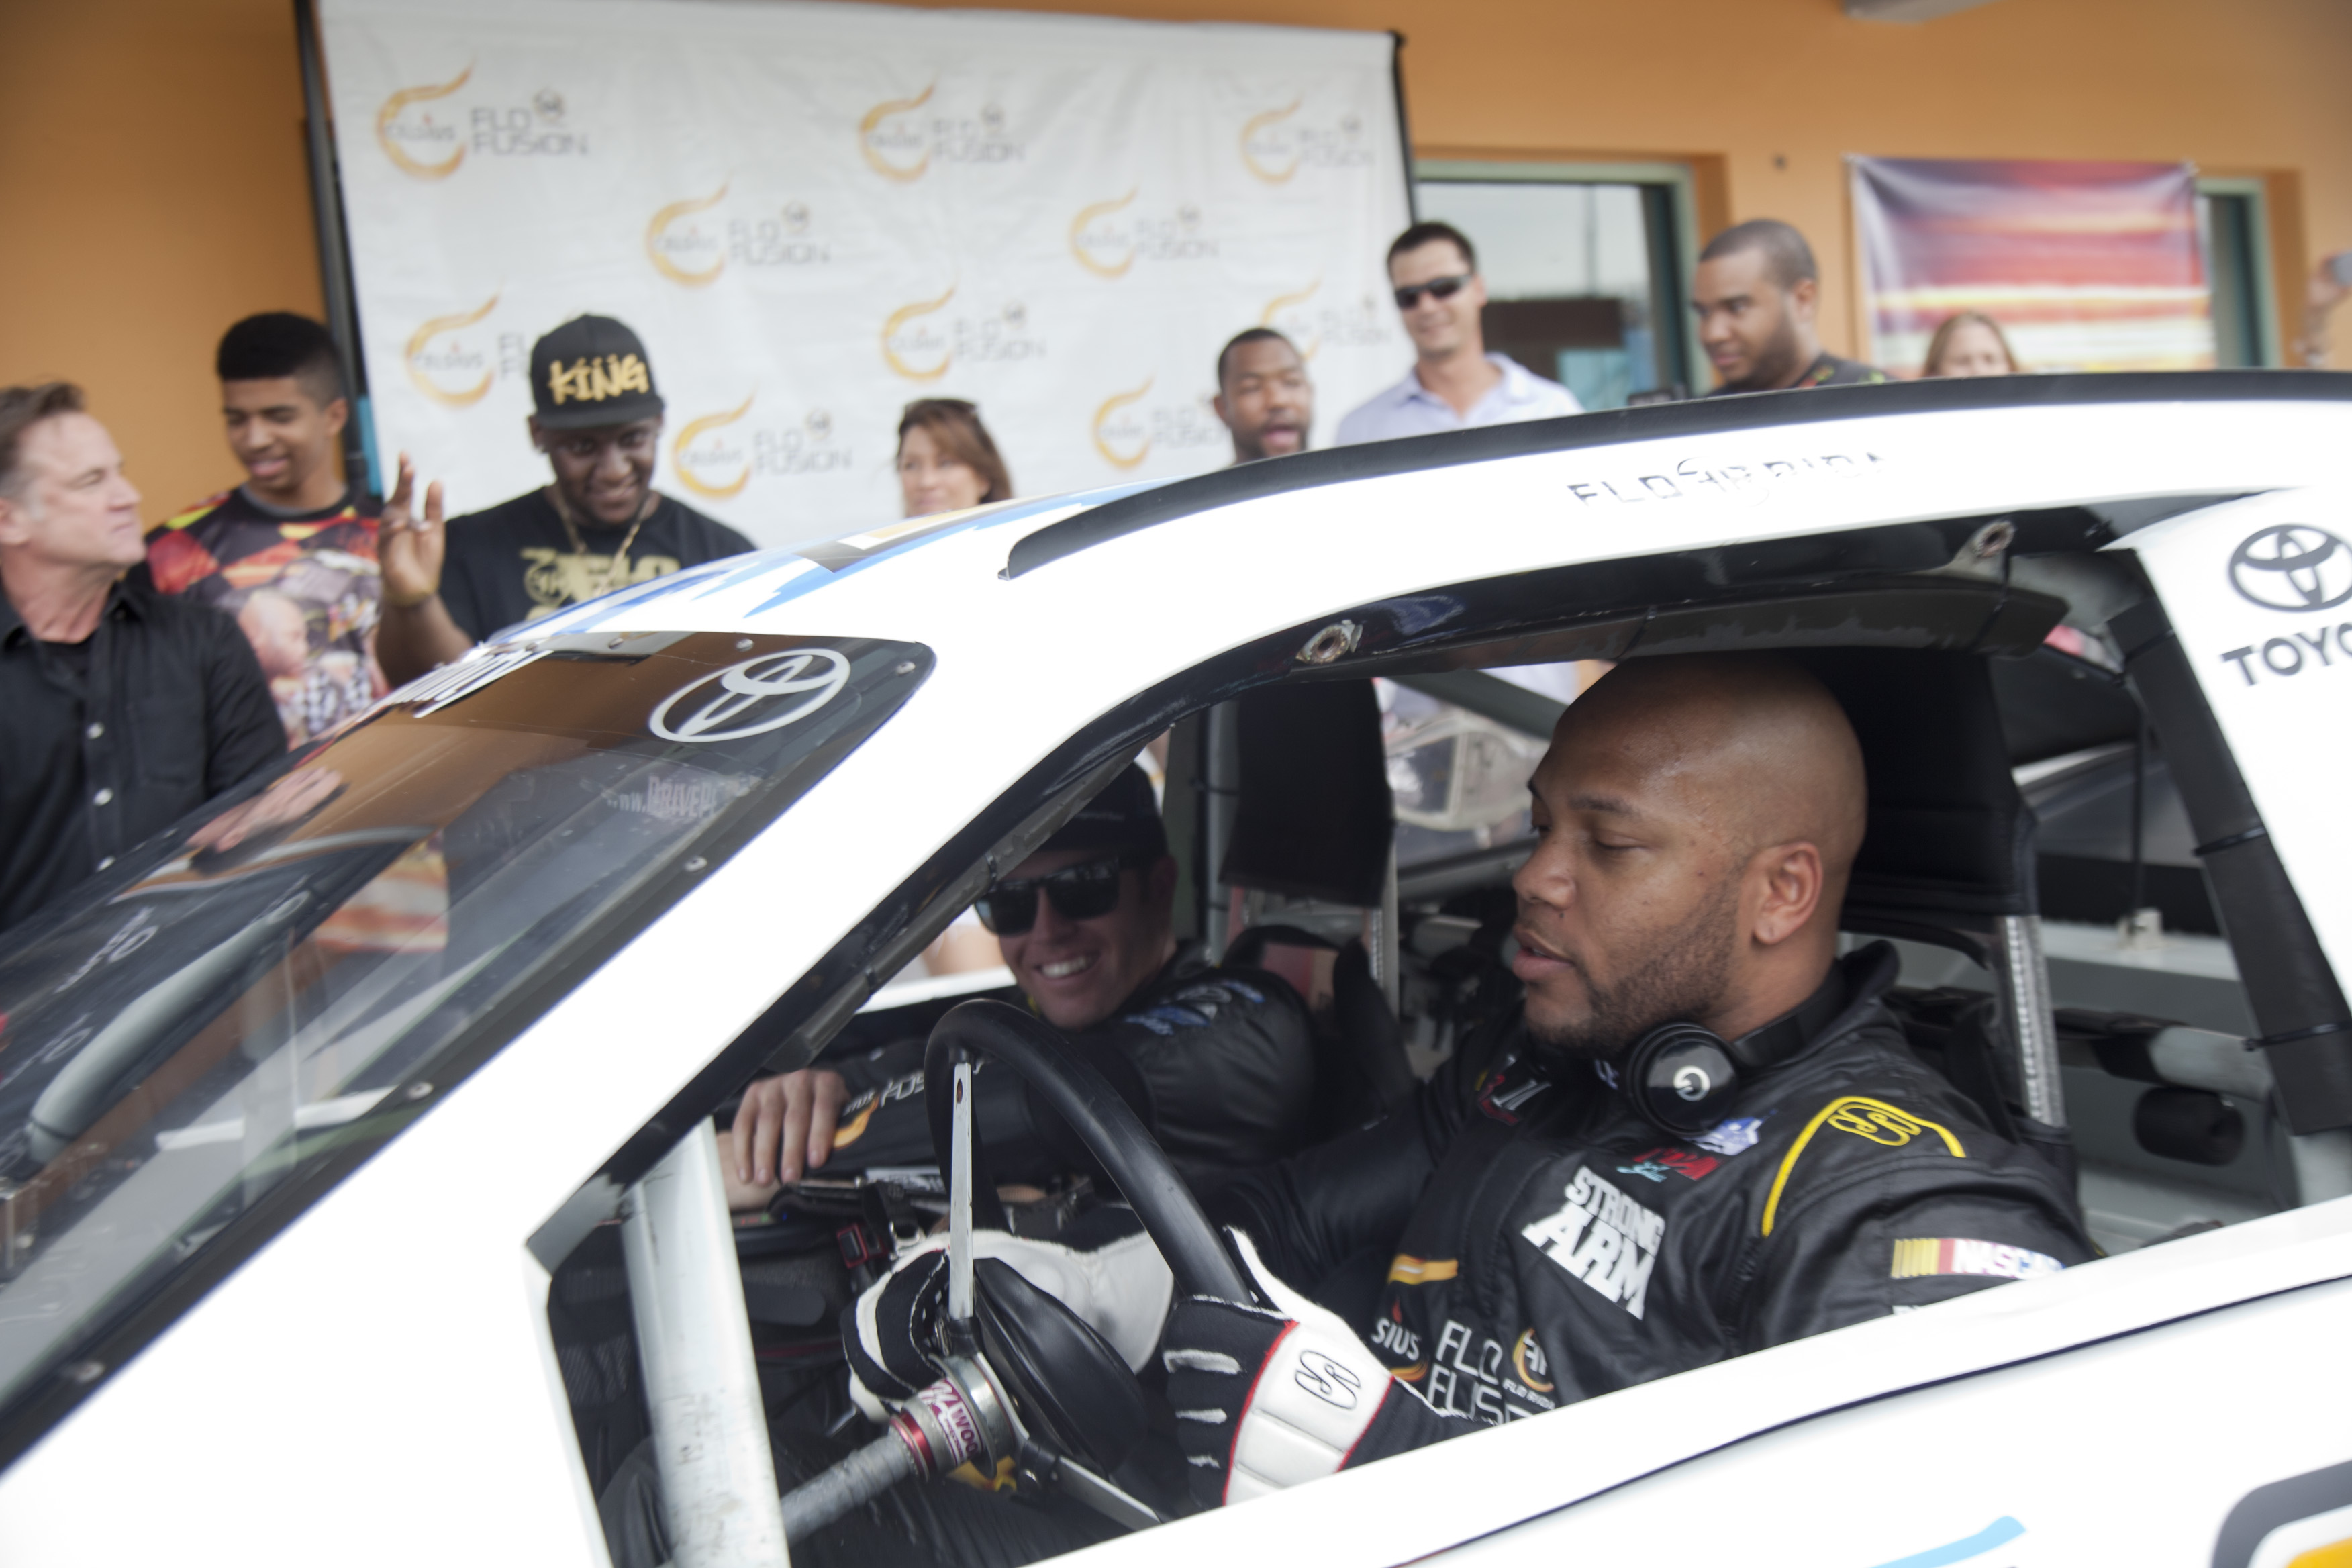 Flo Rida Post-Race - Rapper vs. Racer 2